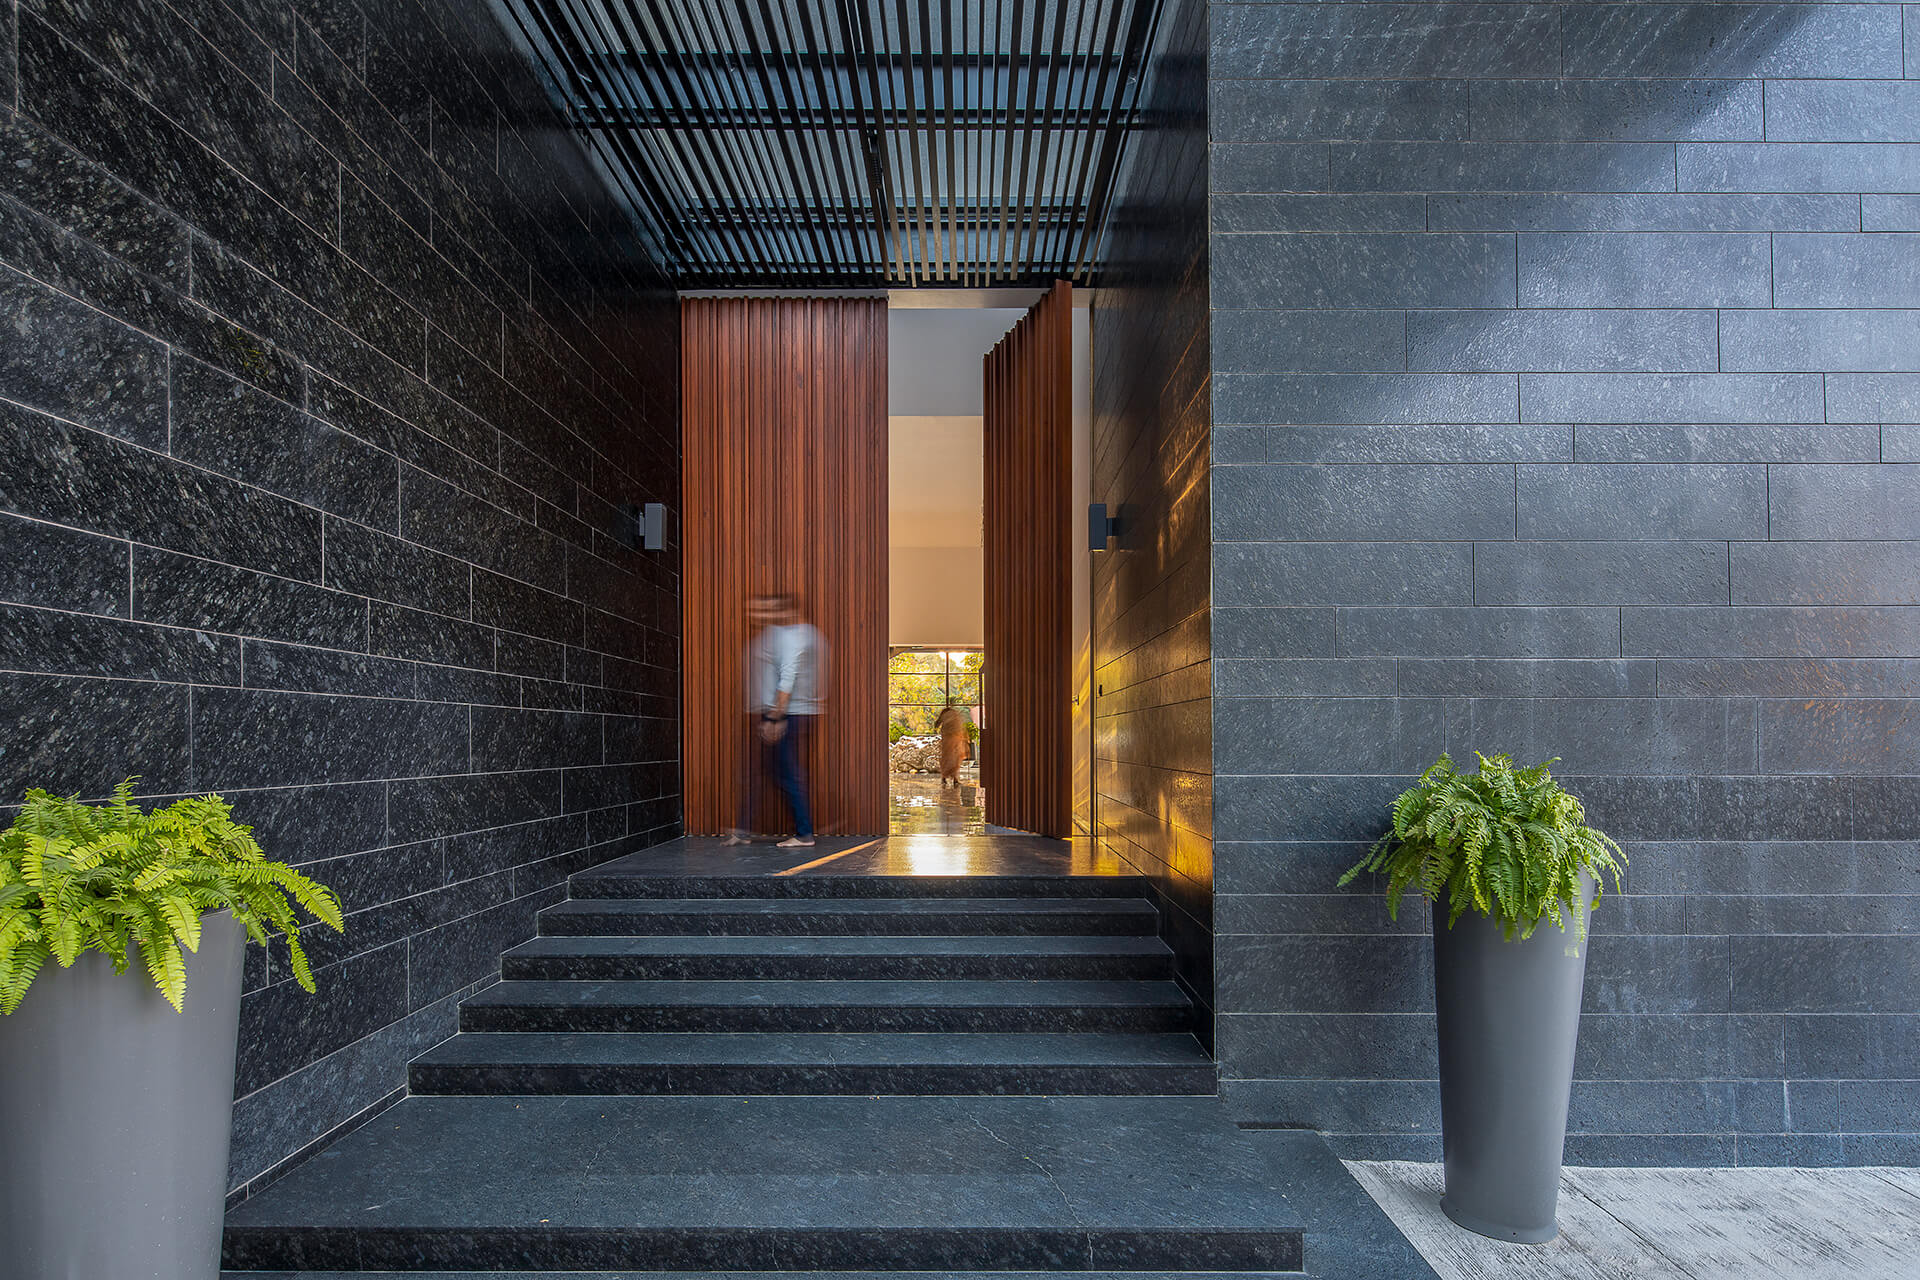 Entrance to the house shows contrast of materials | Black Bastion House | Spasm Design | STIRworld